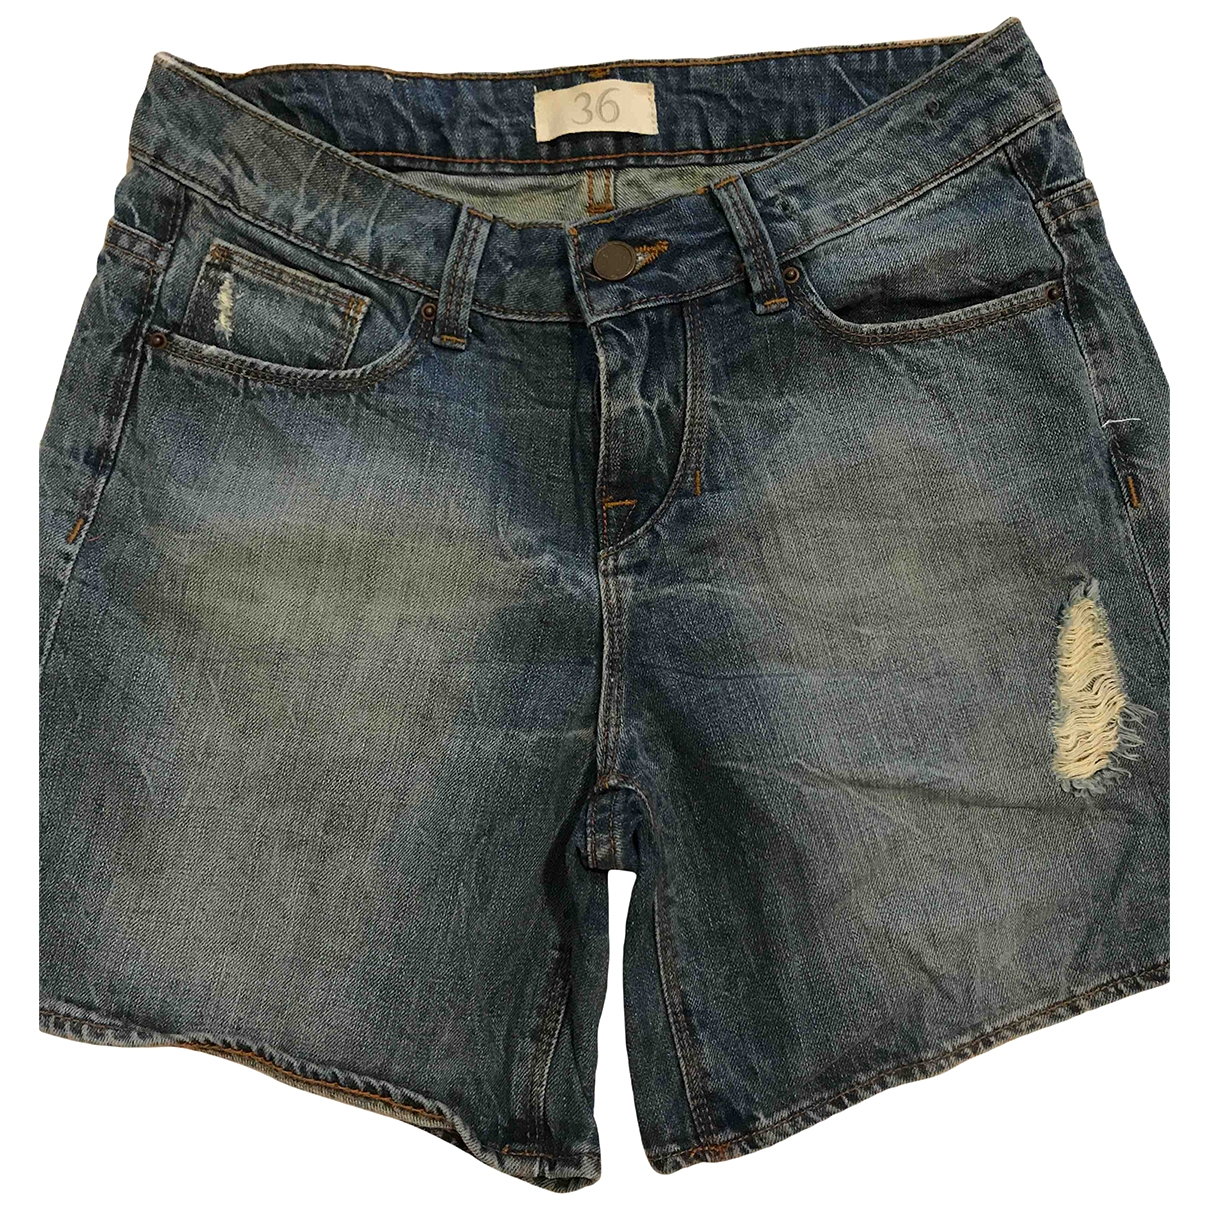 Zara \N Shorts in  Blau Denim - Jeans